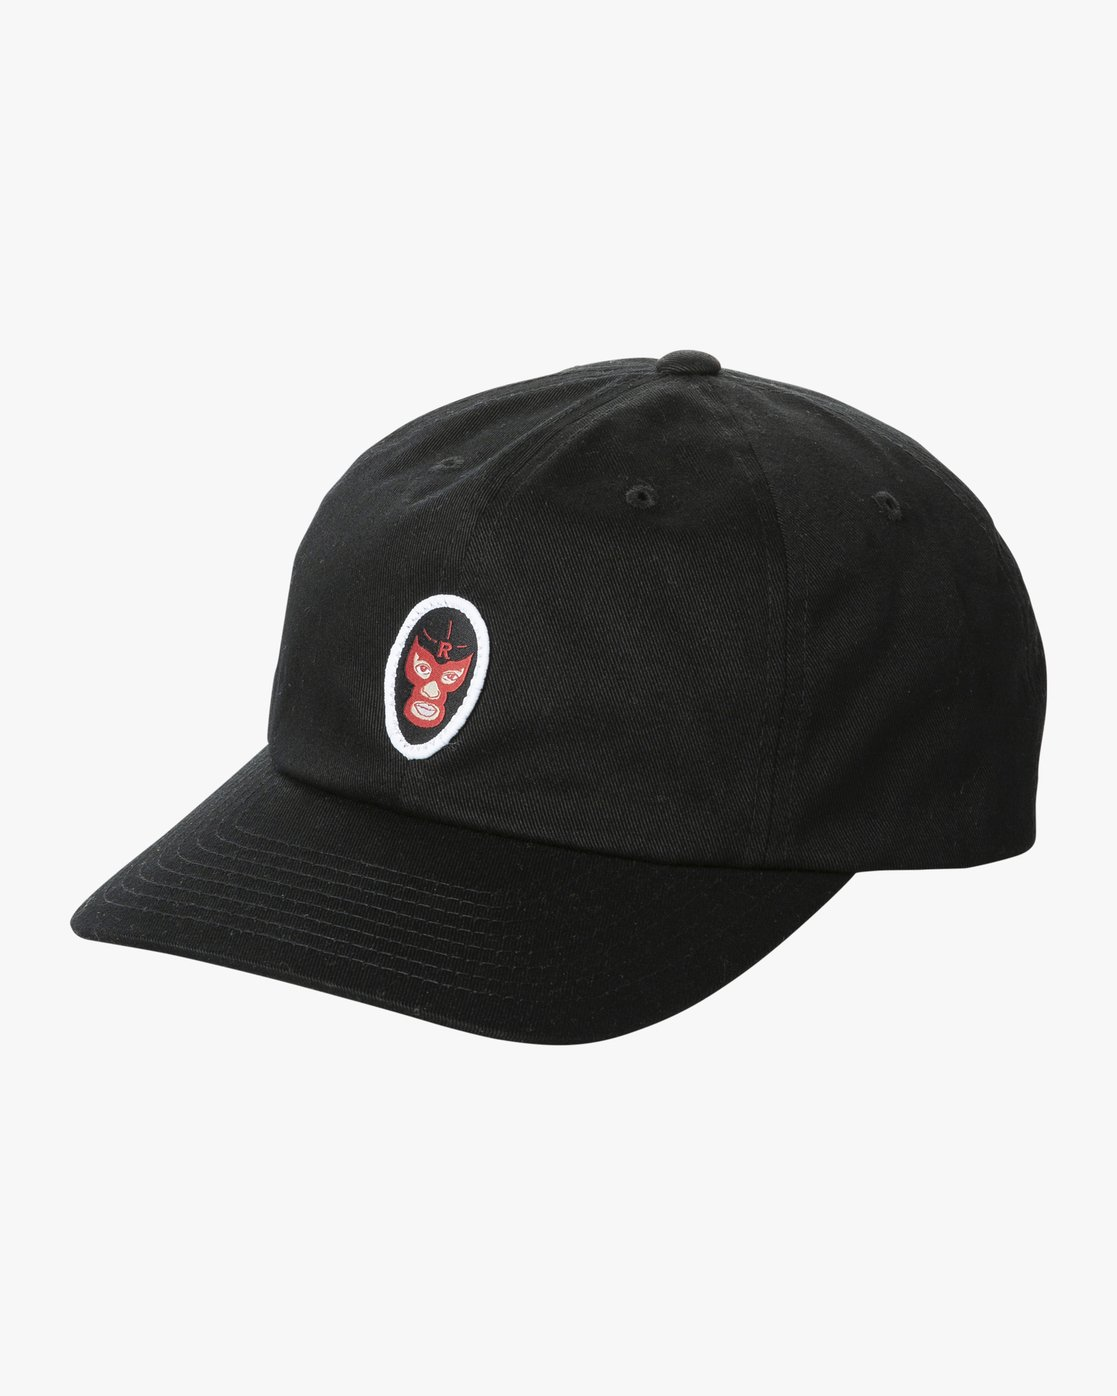 0 HOT FUDGE CAP Black MAHW2RHF RVCA